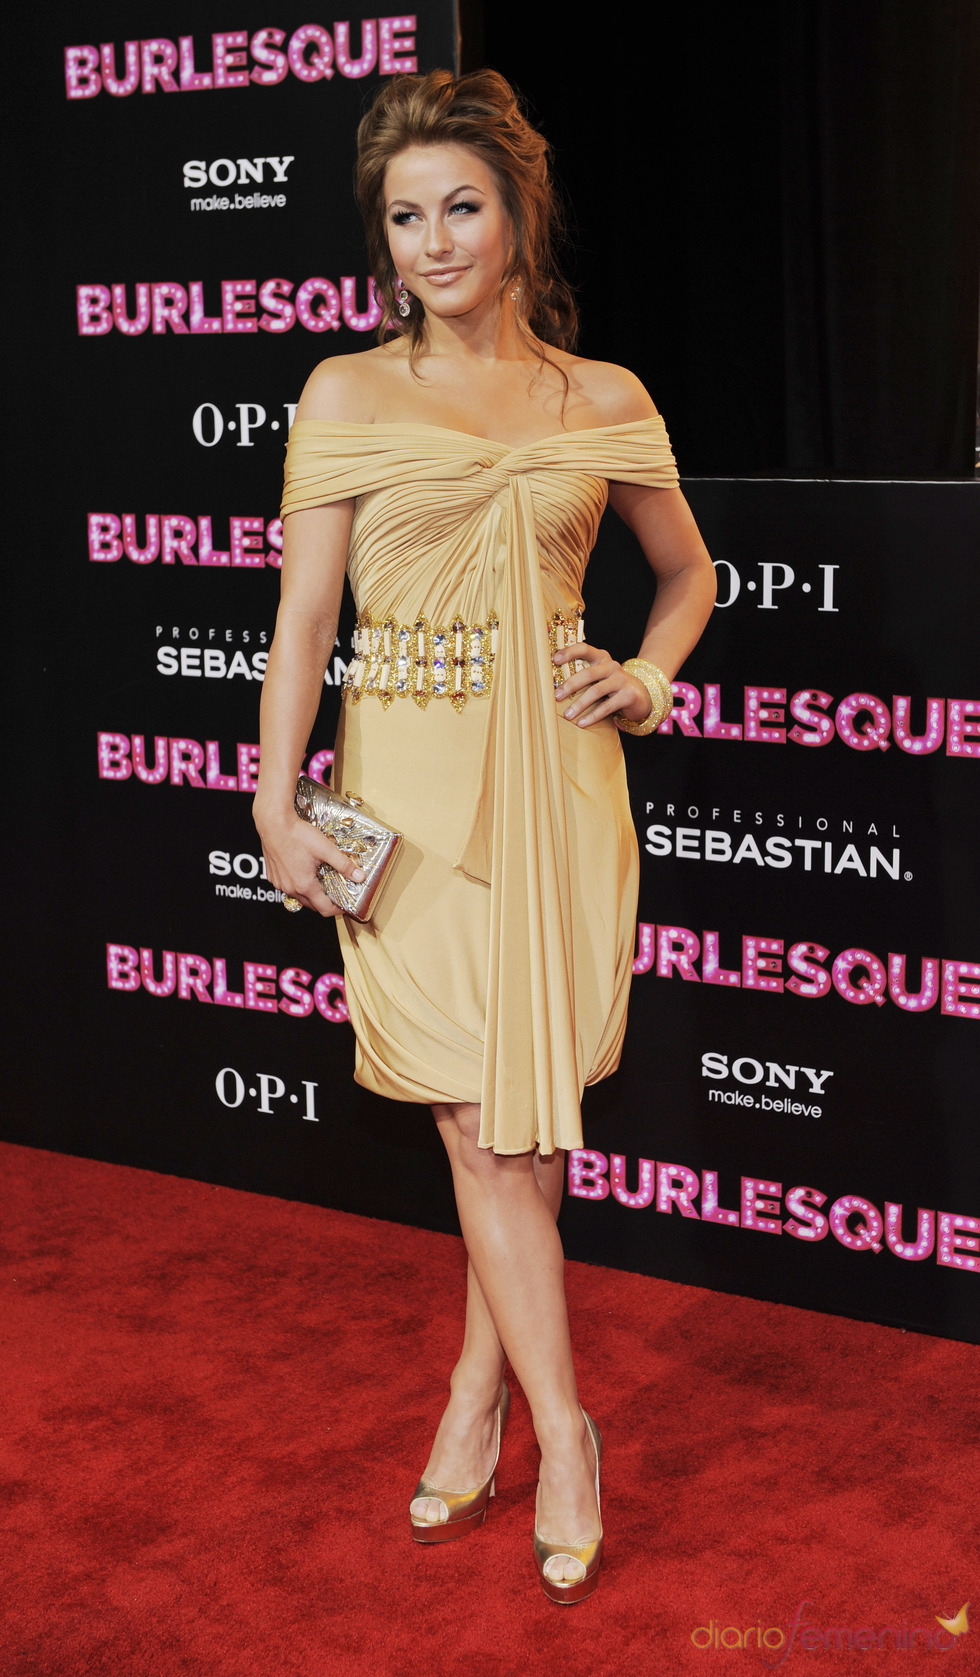 Julianne Hough en la premiere de 'Burlesque'